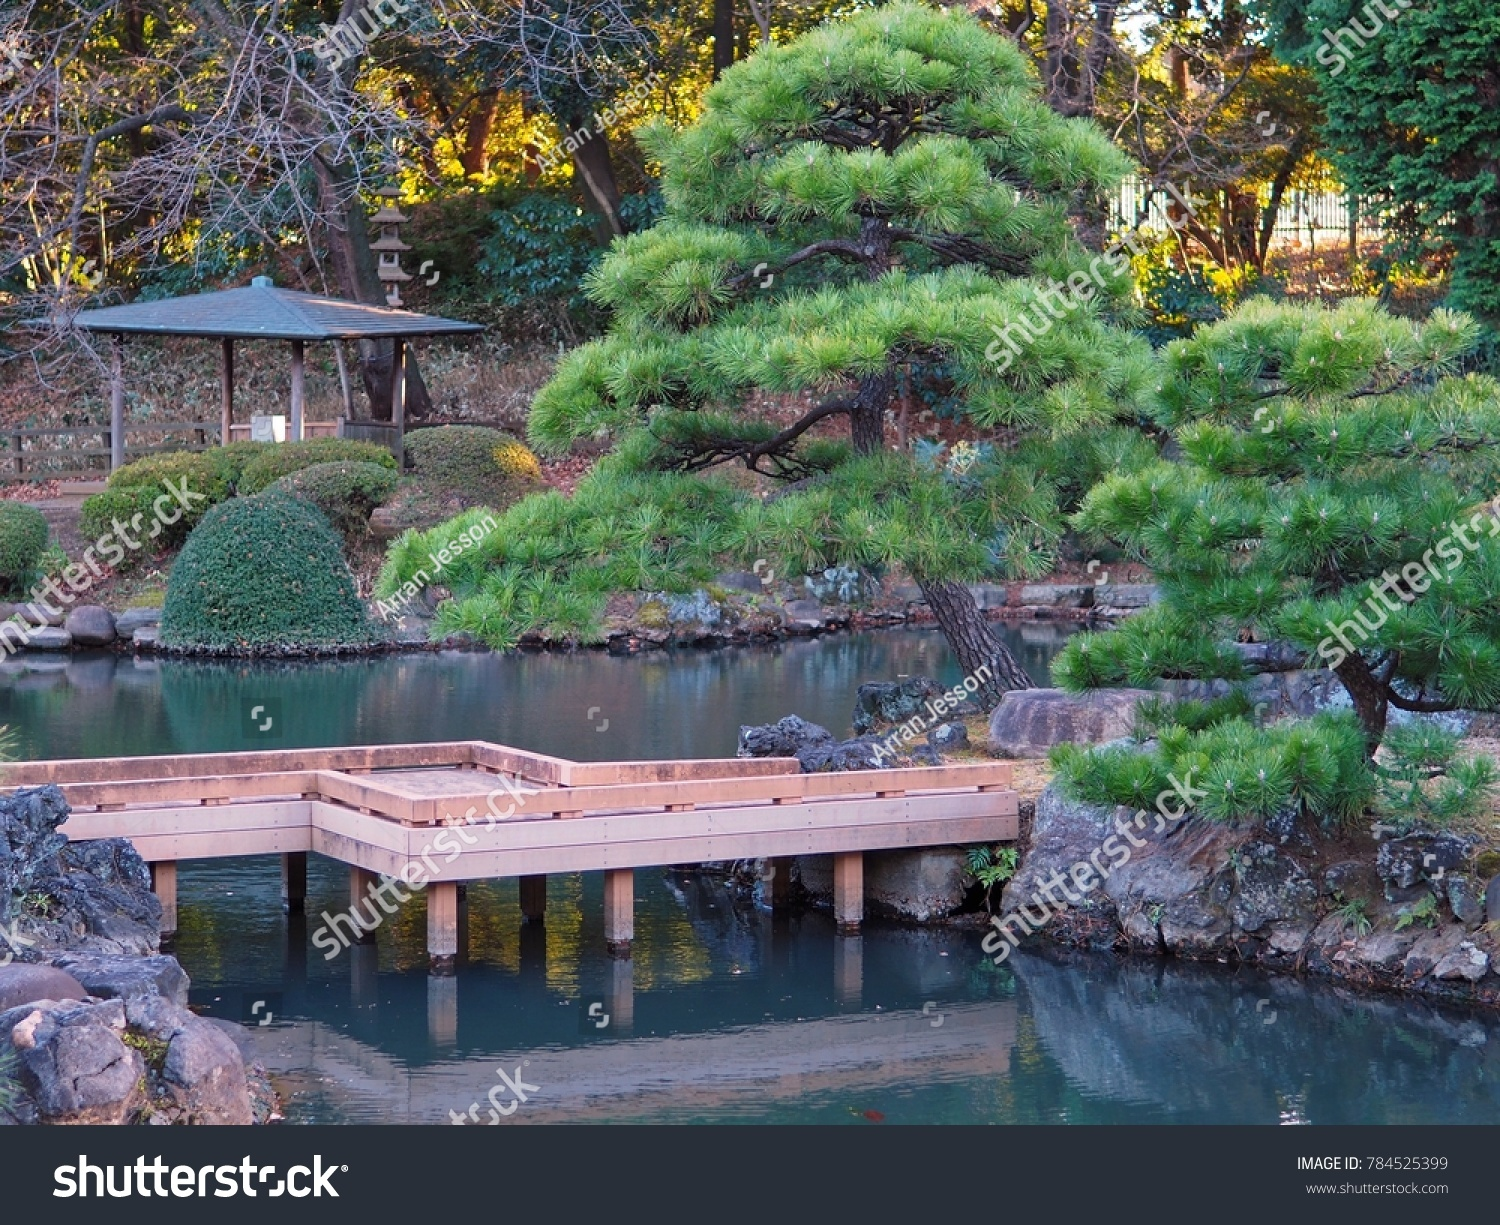 Traditional Japanese Water Garden In Tokyo Including Wooden Bridge, Bonsai  Style Pine Trees, Reflecting